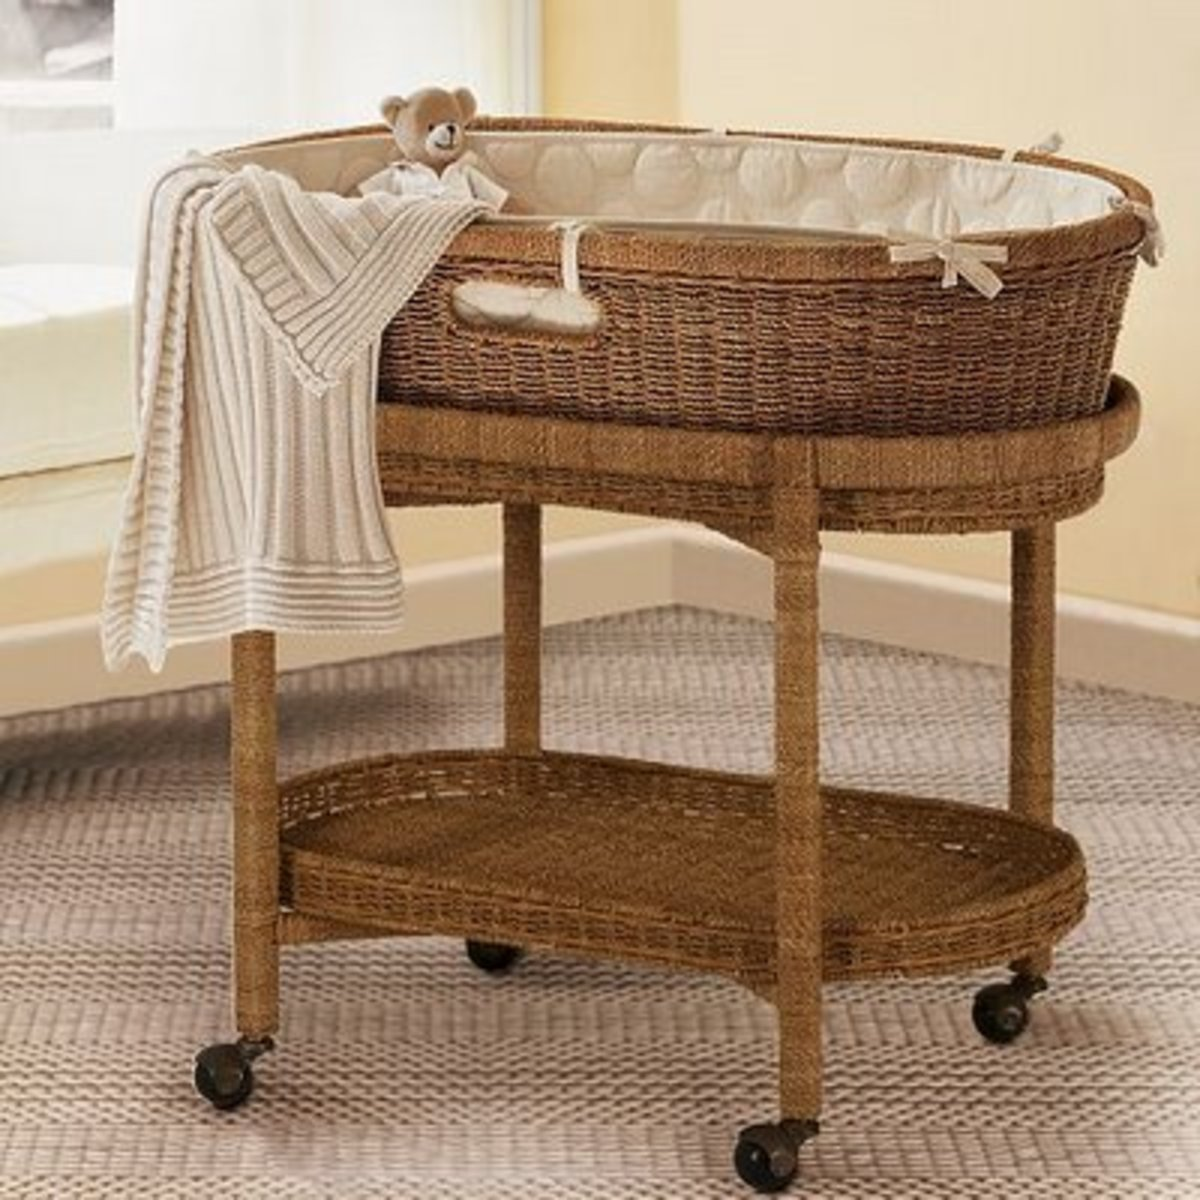 Vintage to modern baby bassinets and moses baskets for Baby bassinet